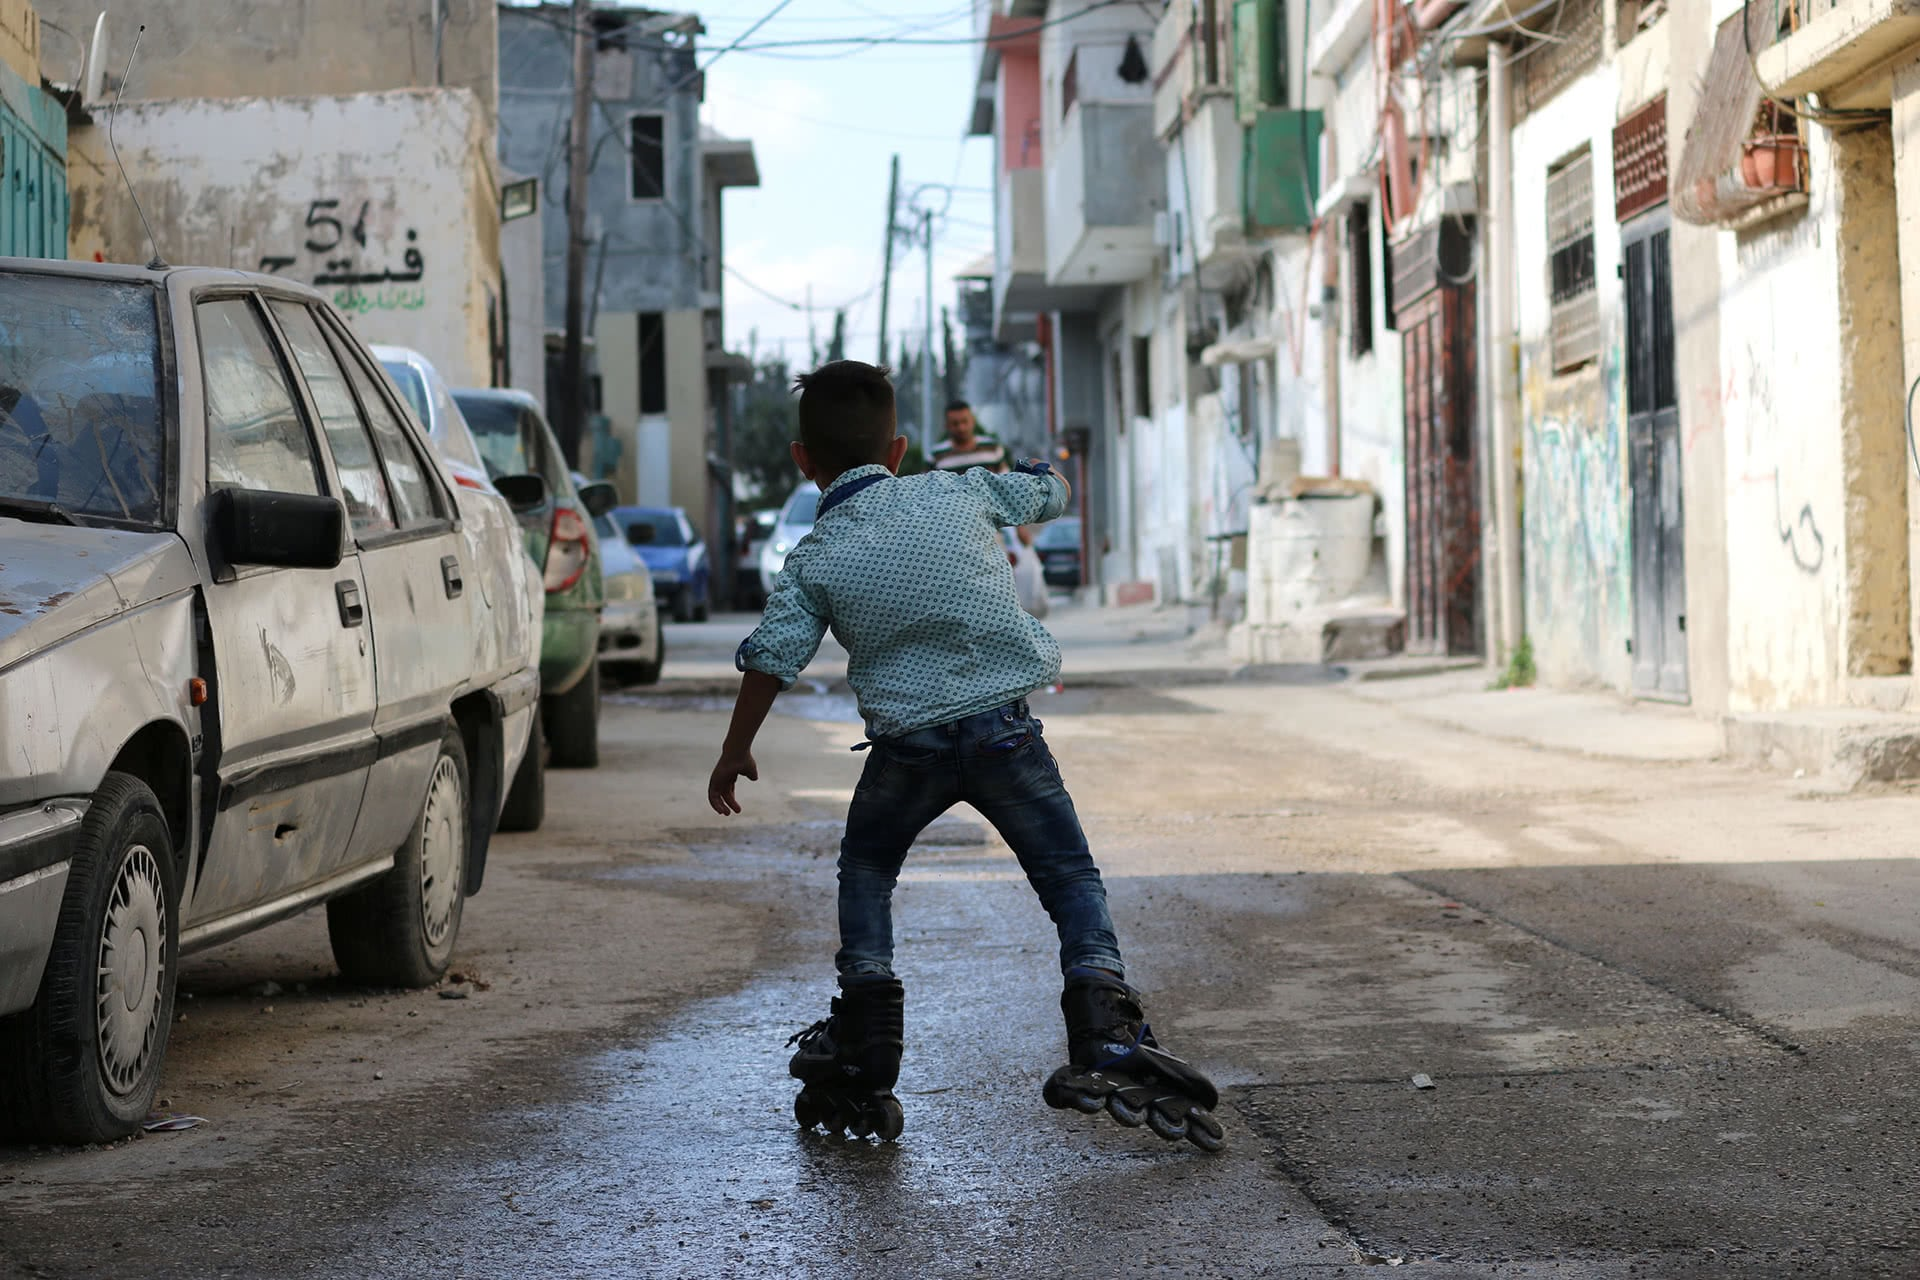 Space Play West Bank Refugee Camps Facing Crisis